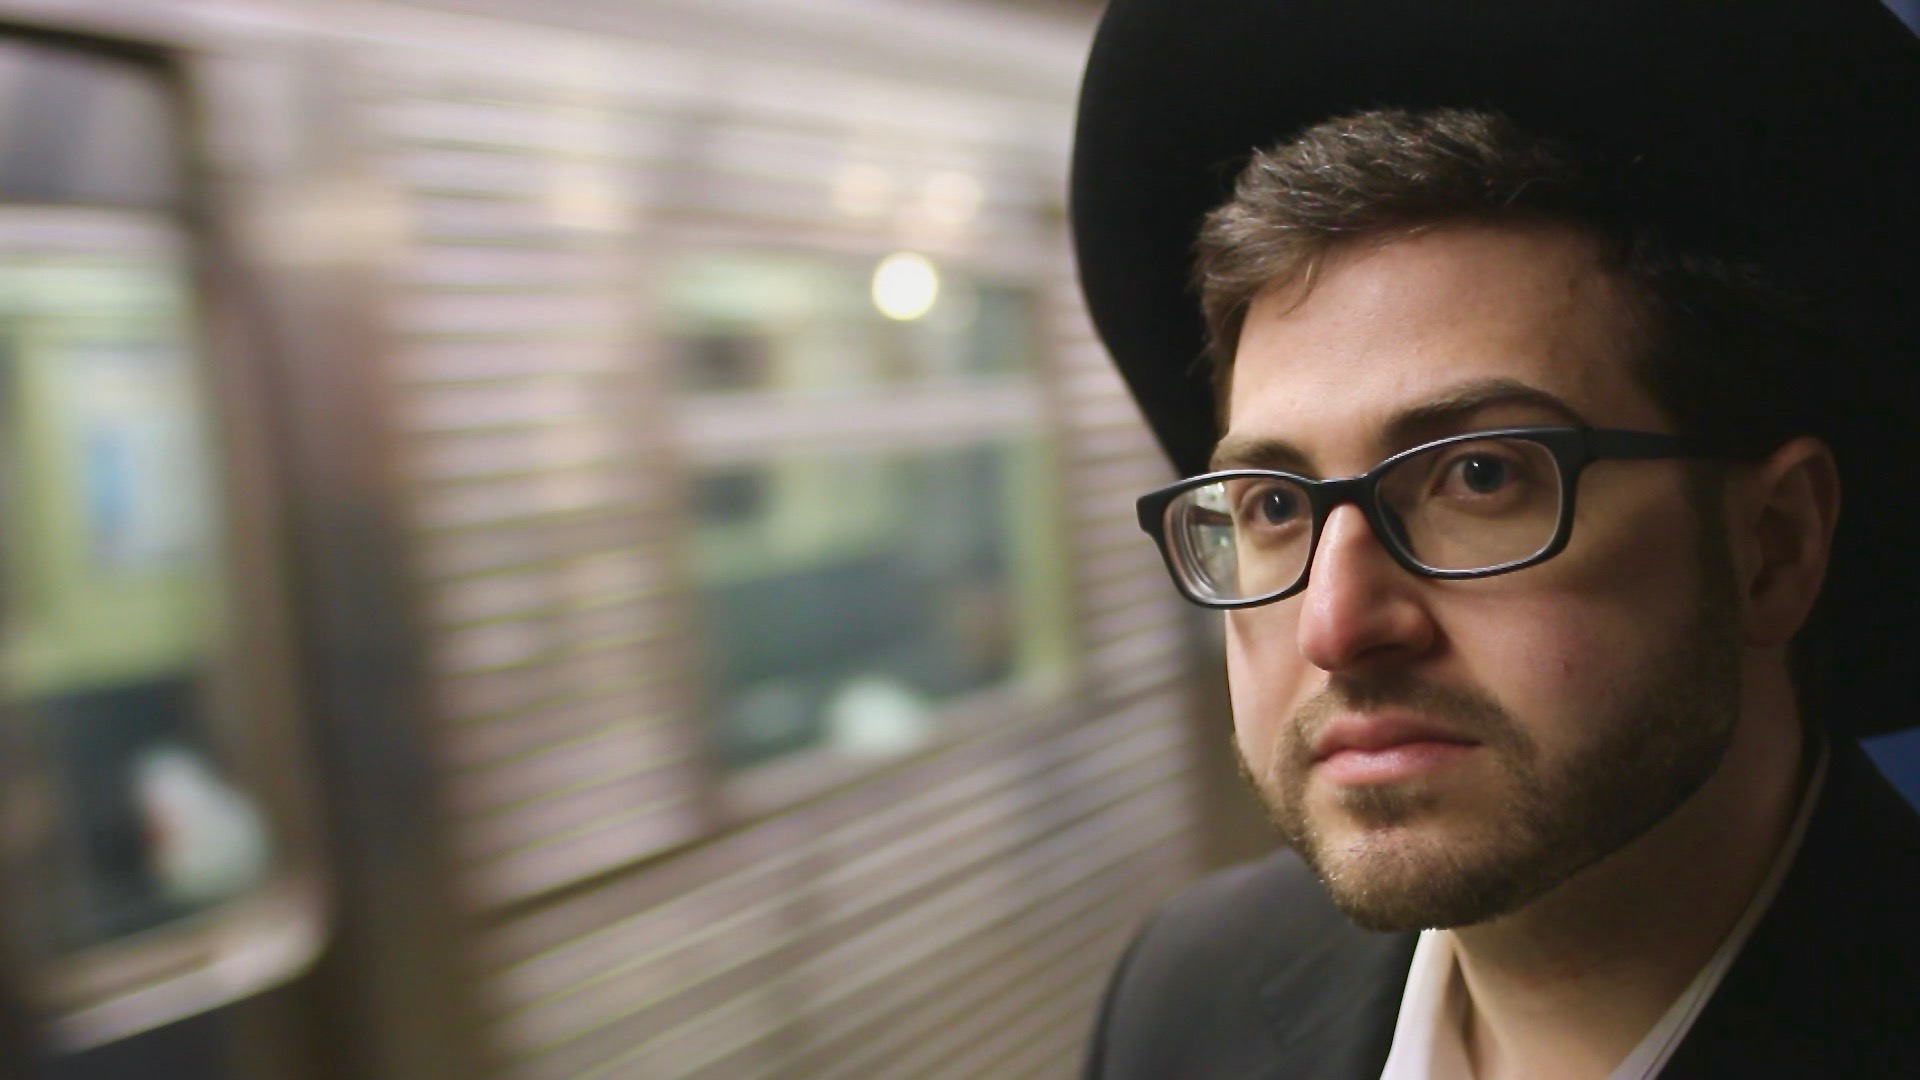 A Jew Walks Into a Bar - A Jew Walks Into a Bar is a 24-minute version of Standing Up focusing only on David Finklestein's story.Synopsis: Ultra-Orthodox Jew David Finklestein struggles to balance his love of stand-up comedy with his strict religious lifestyle, until he's forced to make a choice between his passion and his community.